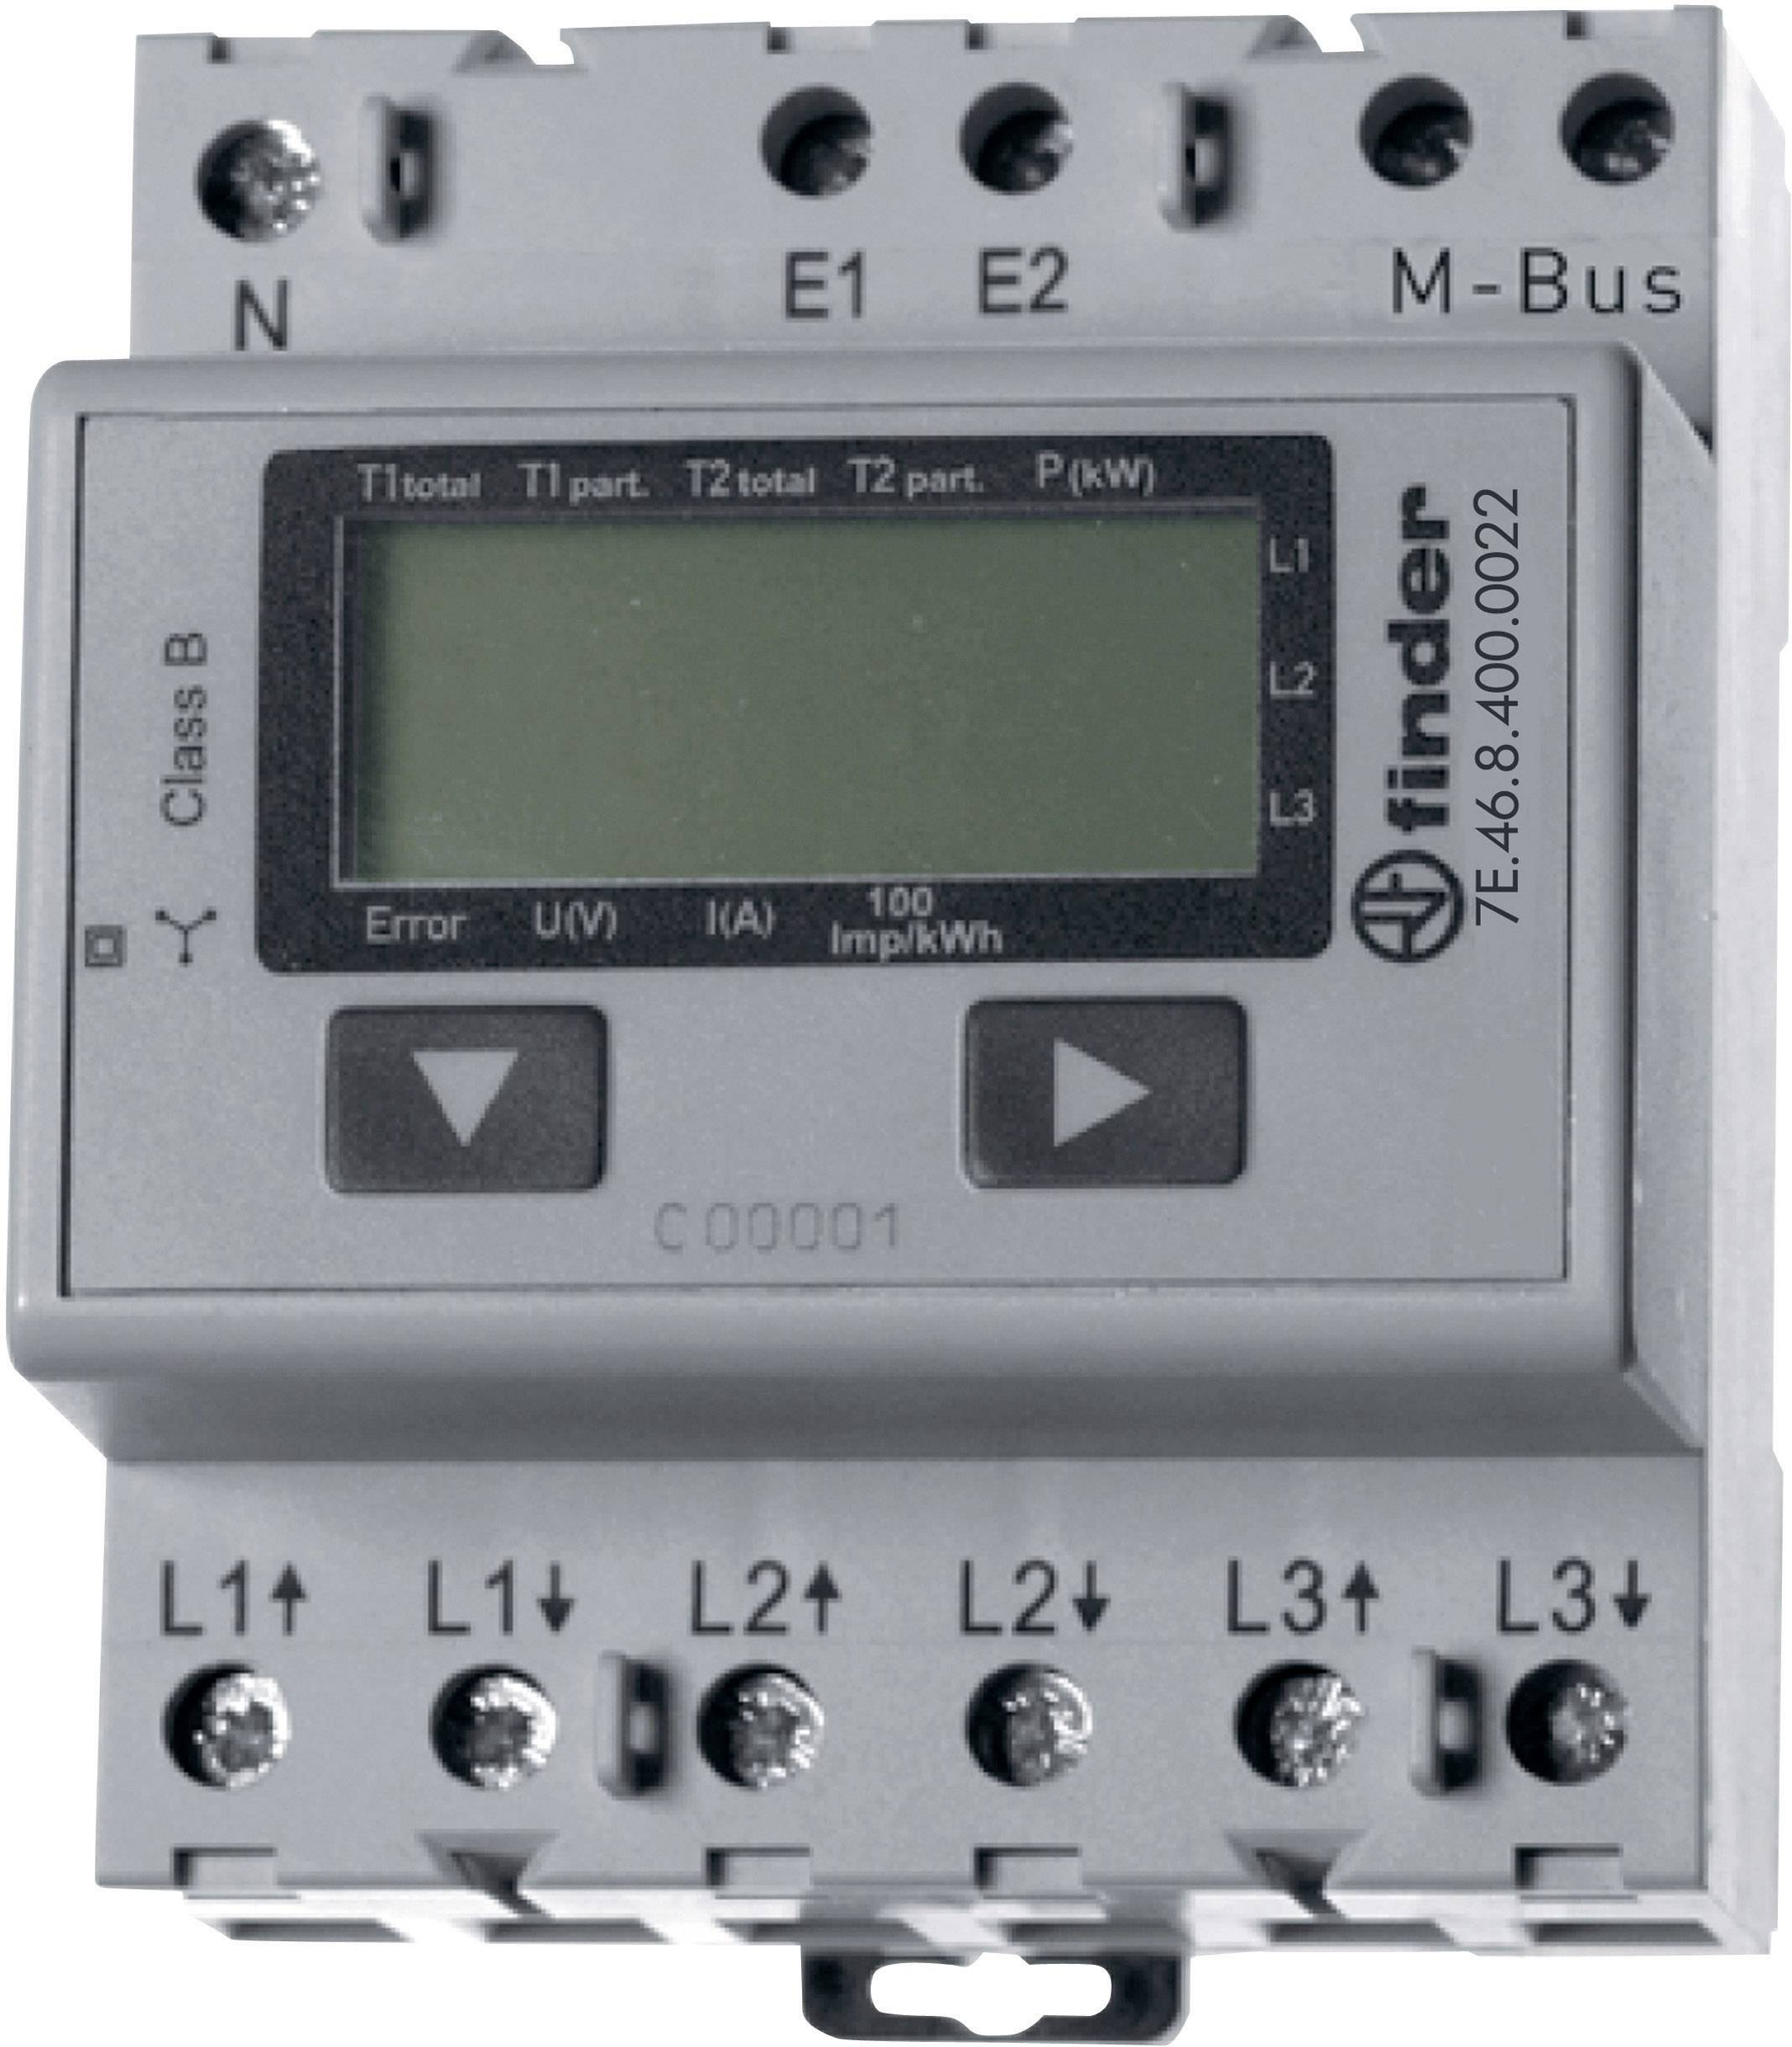 Finder 7E 46 8 400 0022 Electricity meter (3-phase) Digital